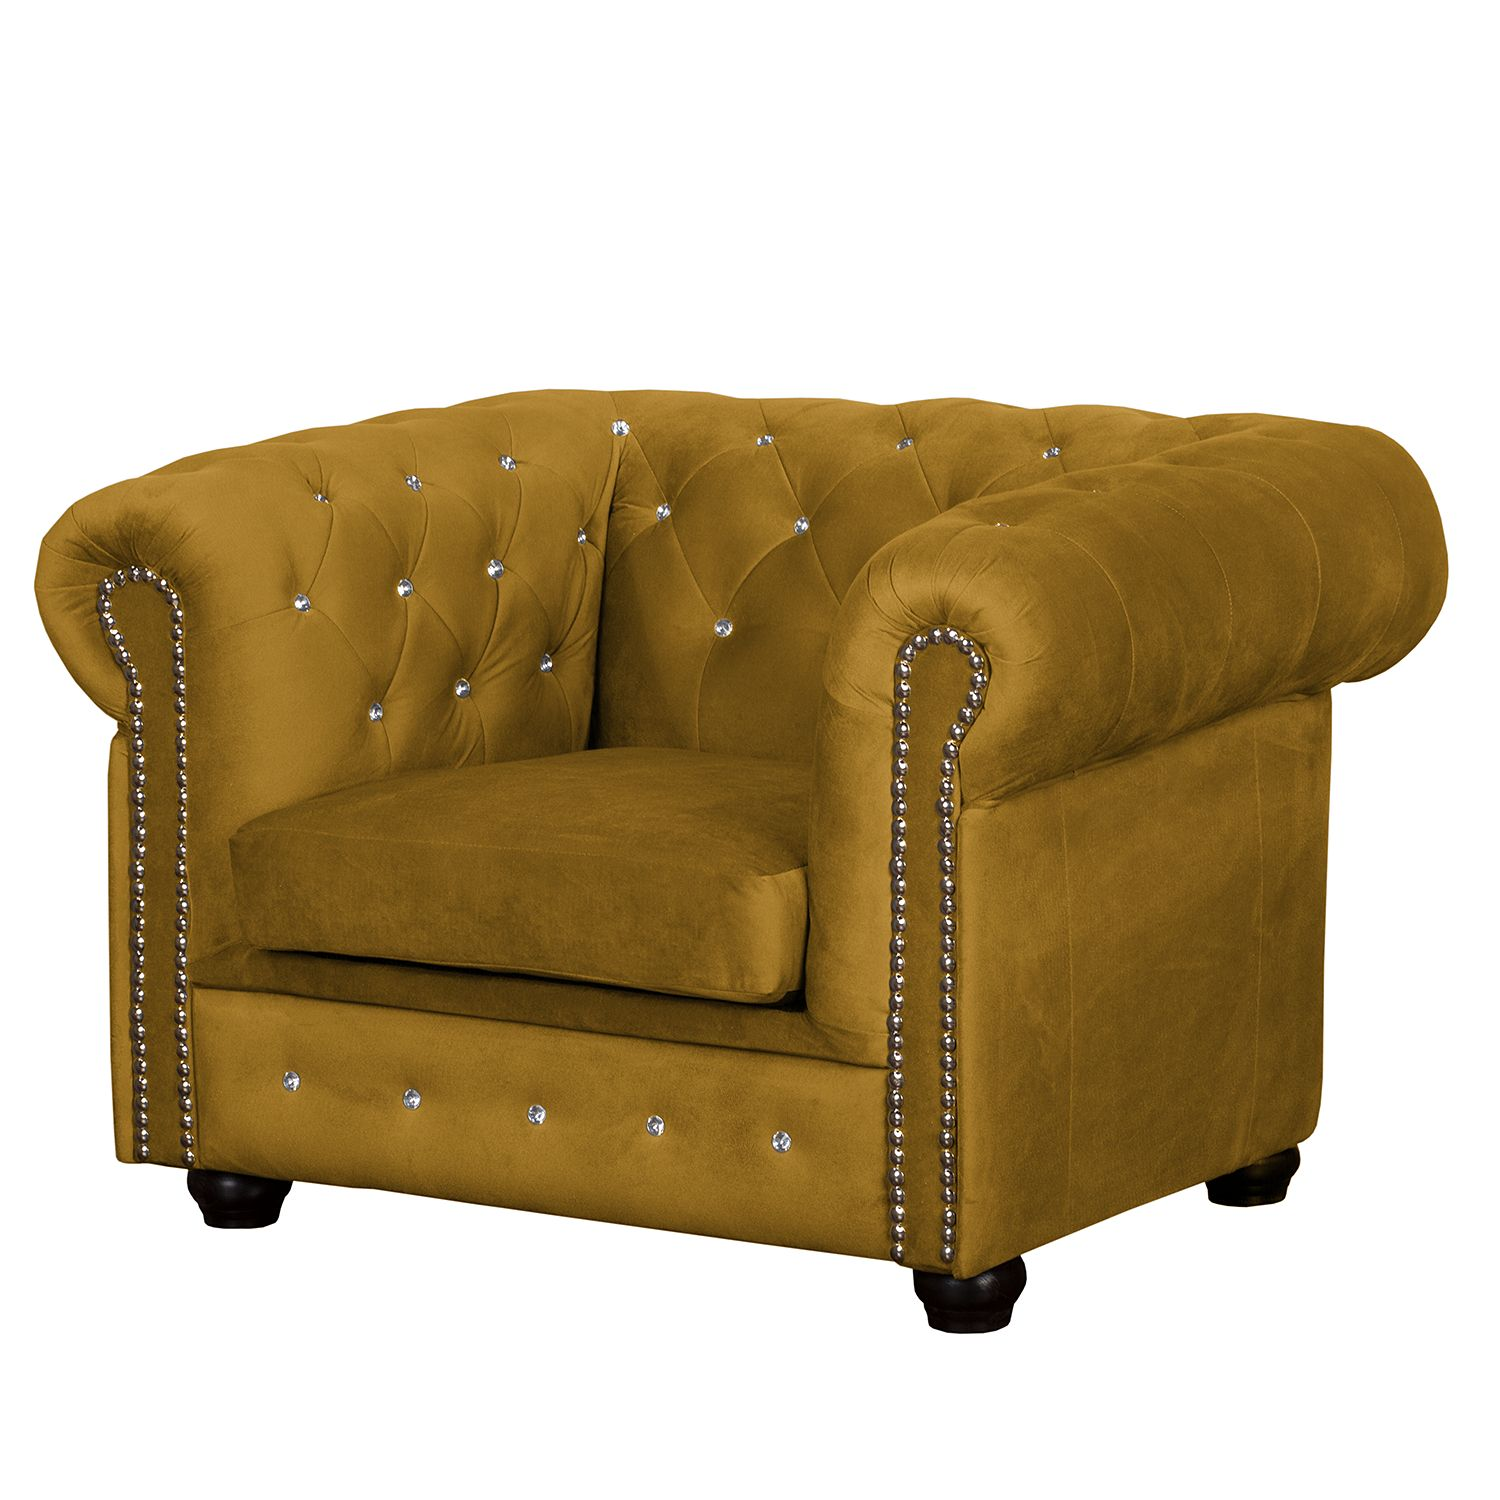 Fauteuil Torquay I - Microfibre - Jaune moutarde, Jack and Alice